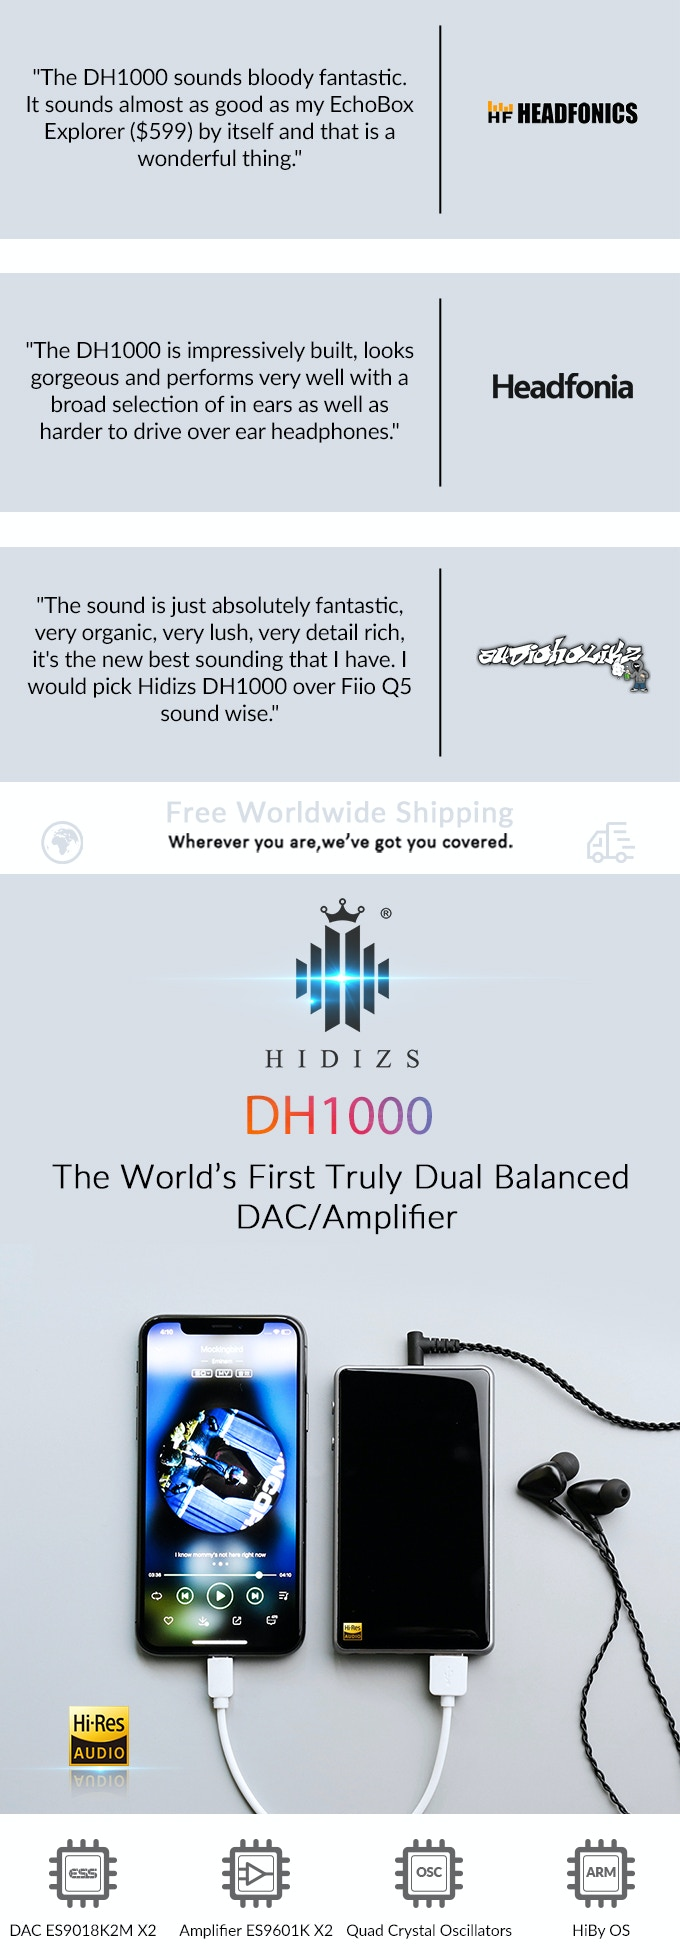 Hidizs Dh1000 Worlds First Truly Dual Balanced Amplifier By Download Image Power Circuit Diagram Pc Android Iphone And The Dacs Are Embedded In A Op Amp To Maximize Stereo Separation With Its Channel Headphone Amplifiers Flows